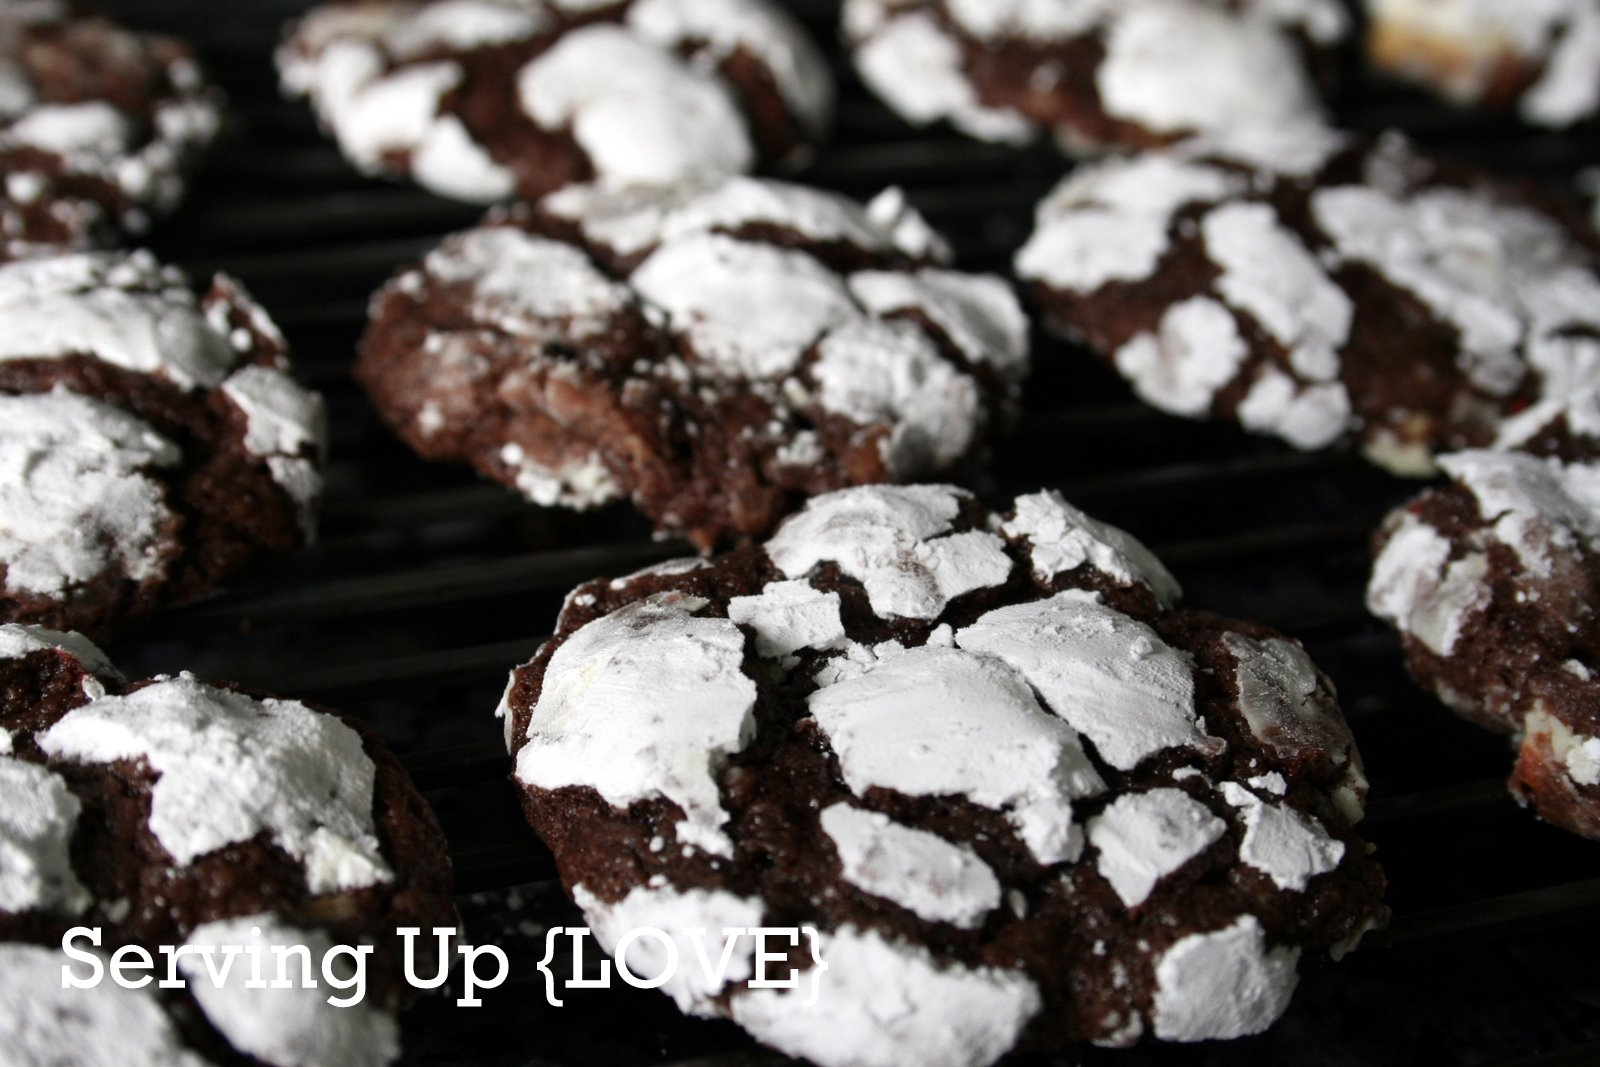 Katherine's Kitchen: Serving Up {Cookies}: Loaded Chocolate Crinkles